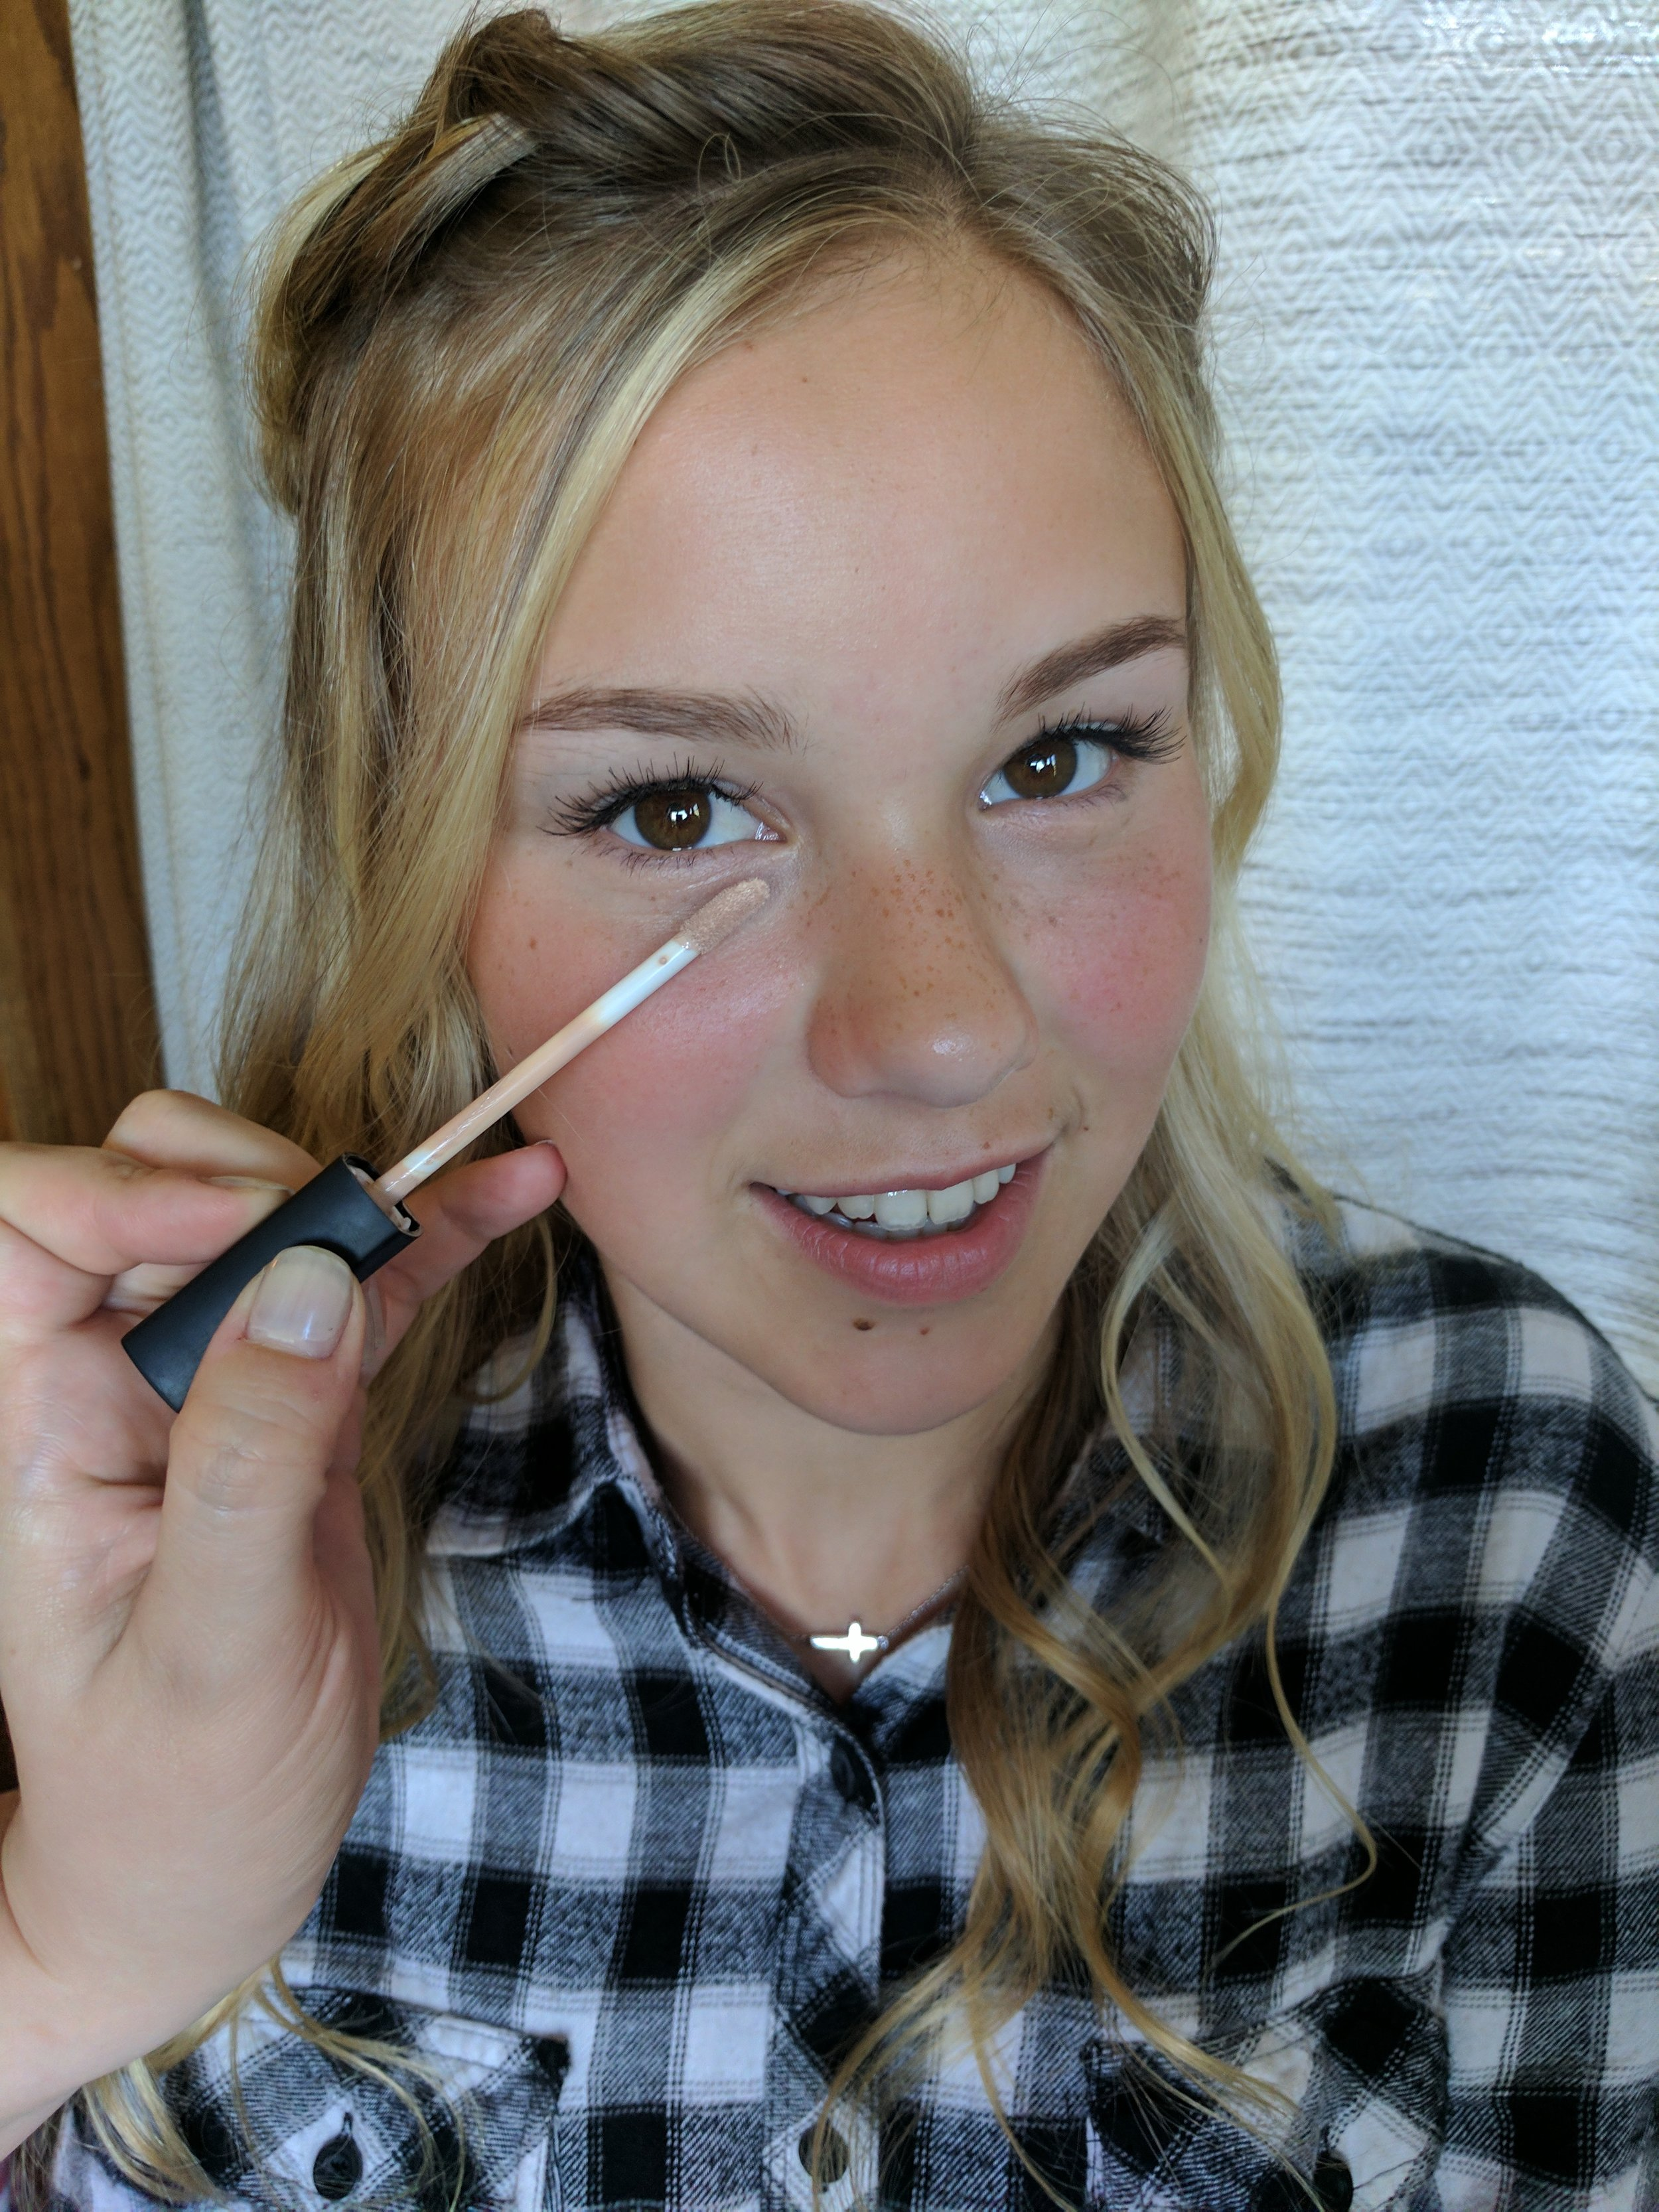 Step 3. - Apply concealer to any trouble spots and gently blend (I just use my *clean* fingers!)